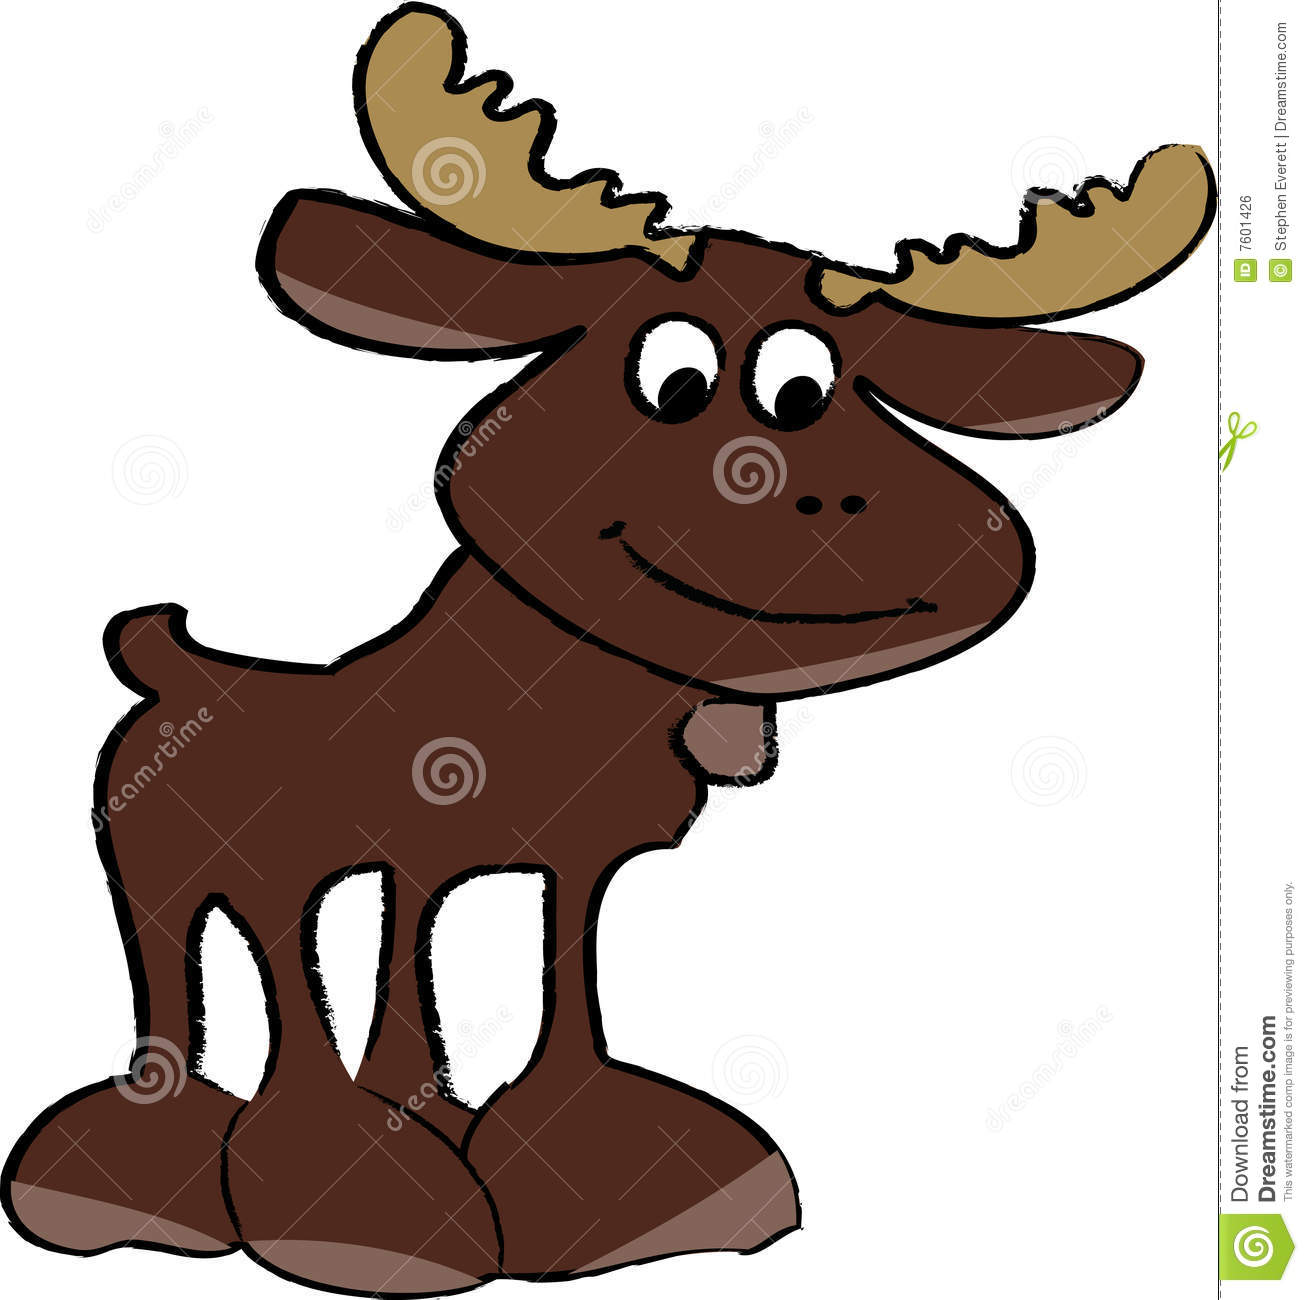 cartoon moose stock photos images u0026 pictures 36 images